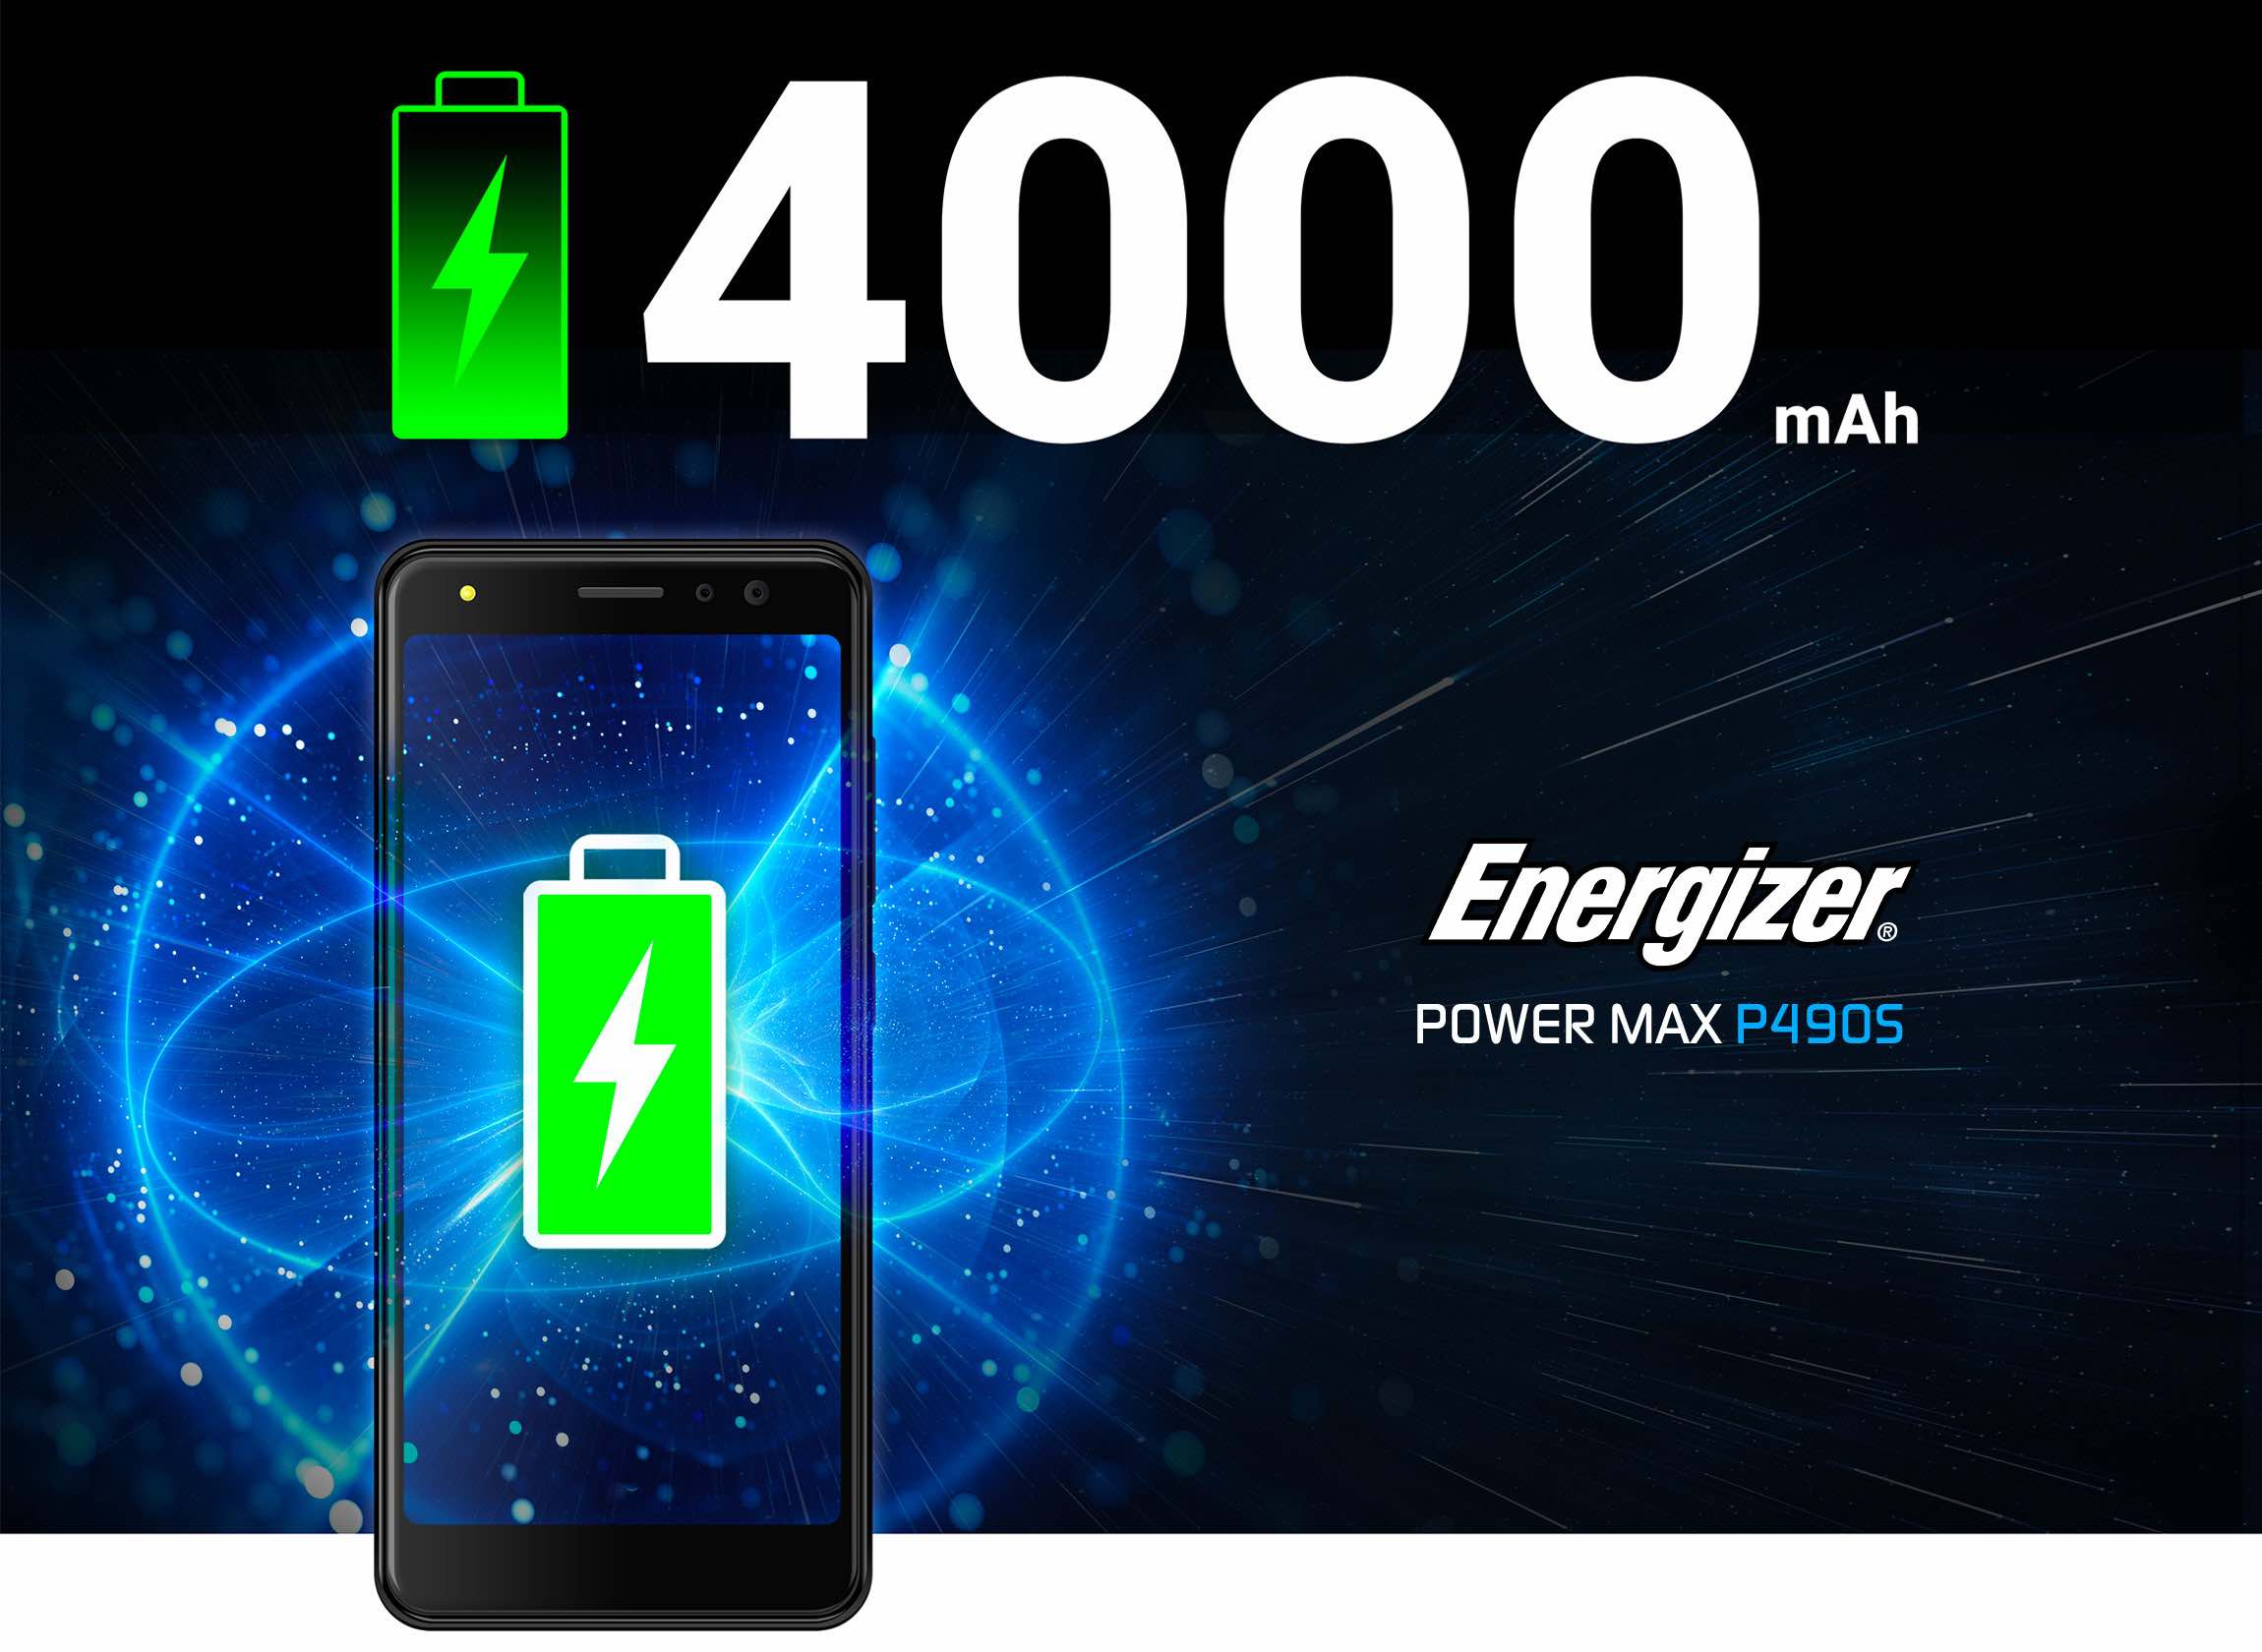 Energizer Power Max P490S 4G smartphone battery power